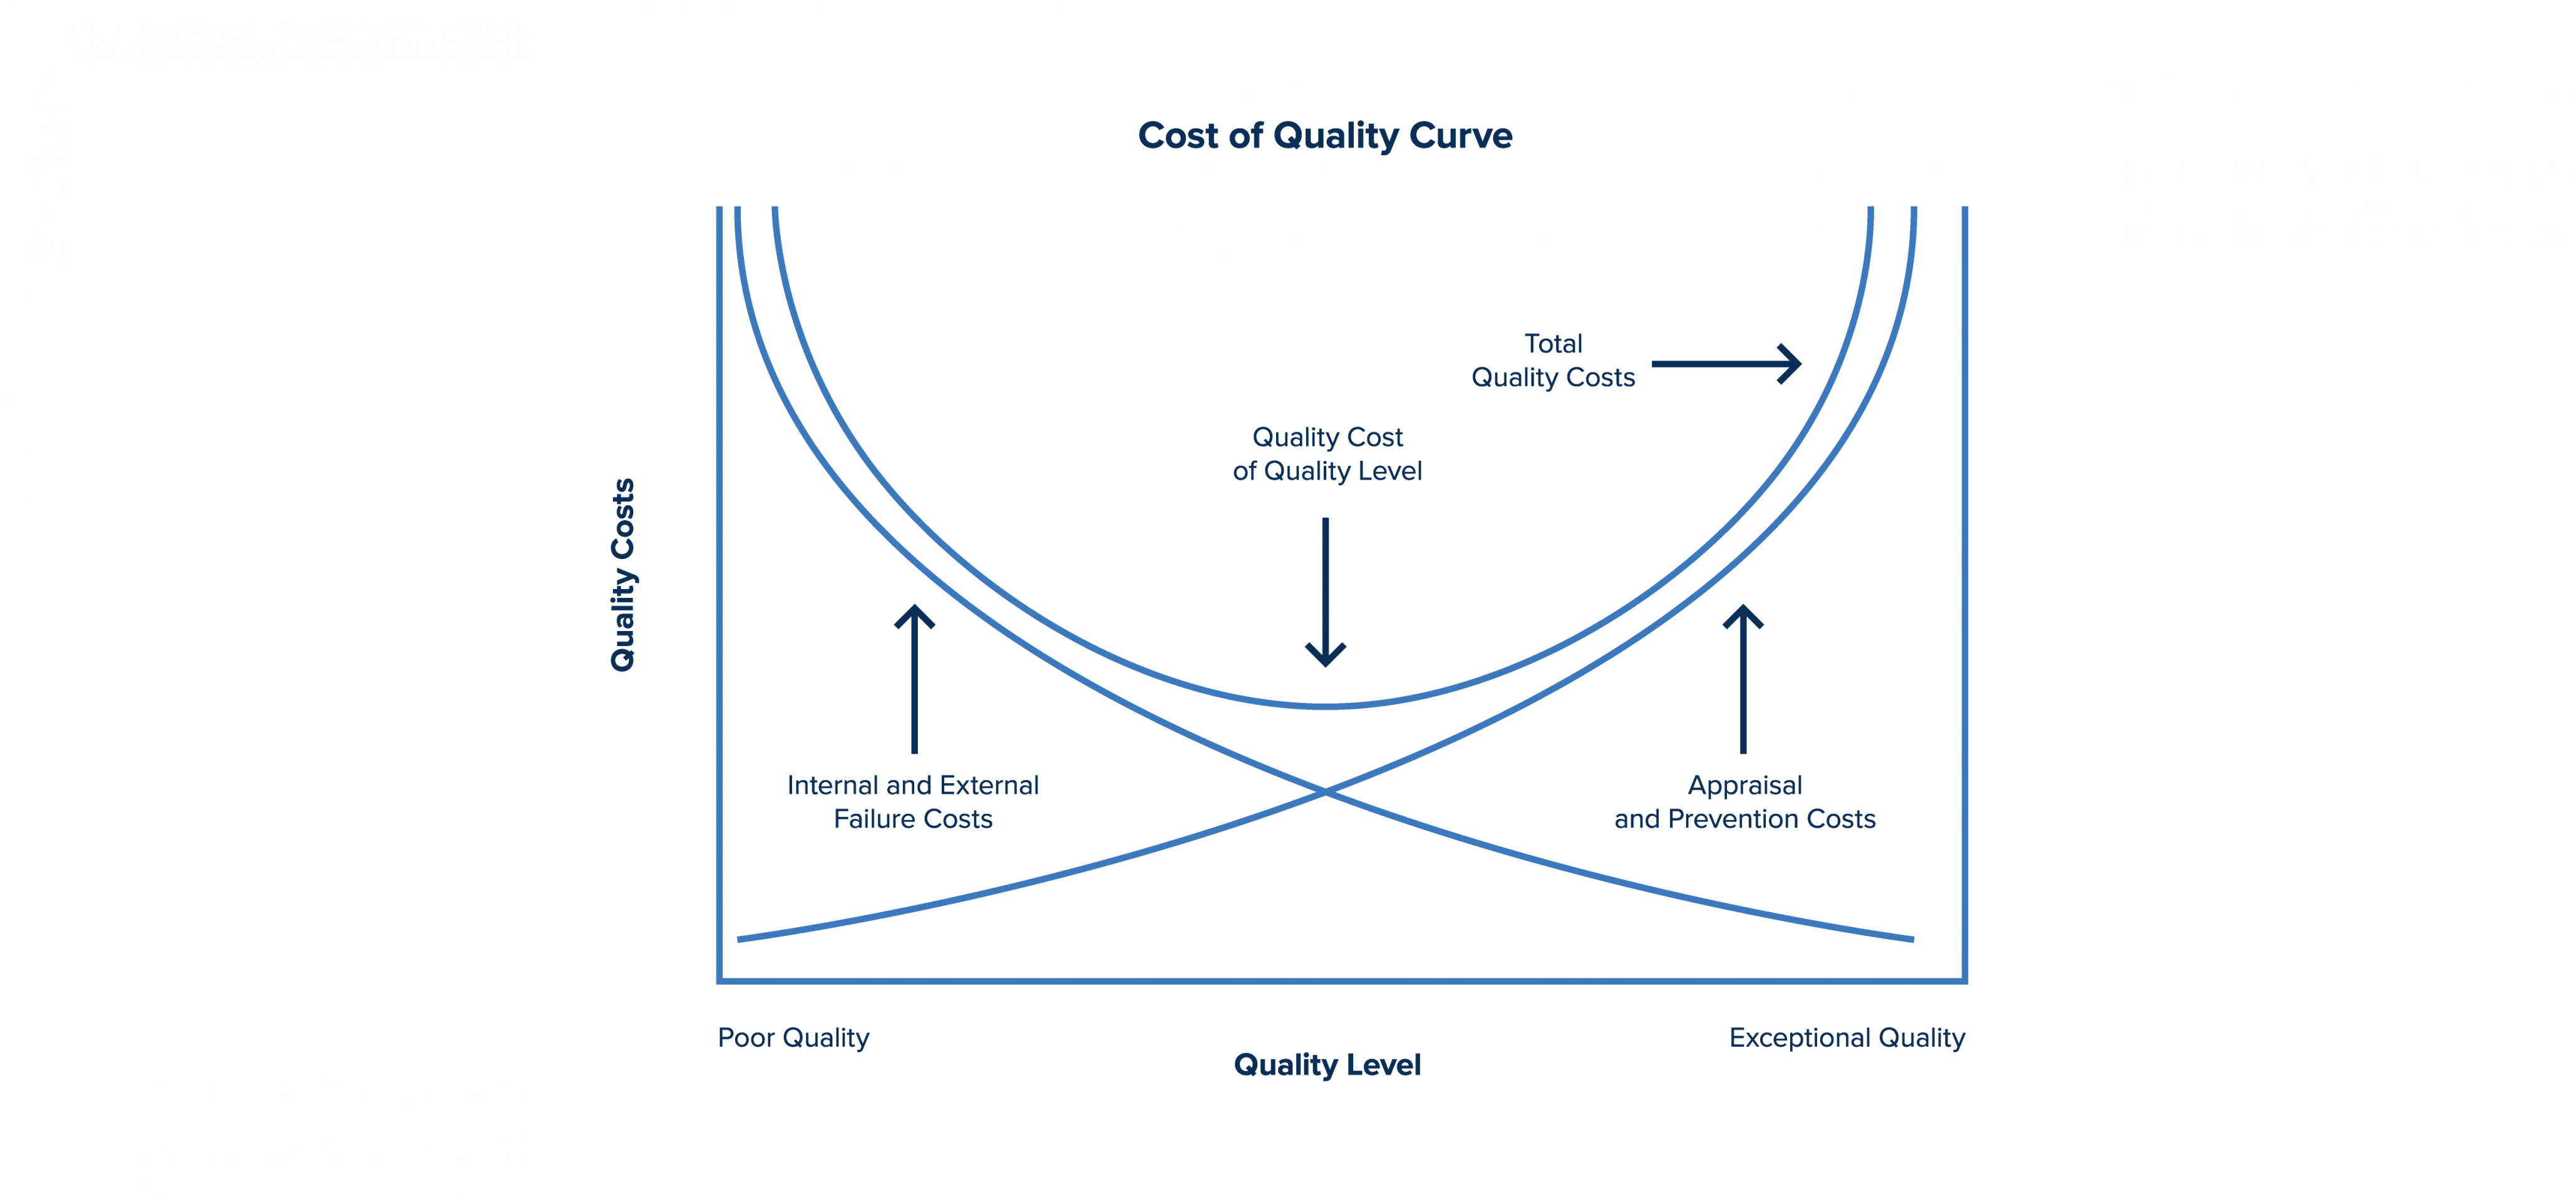 how to find an optimal point between quality level and quality costs